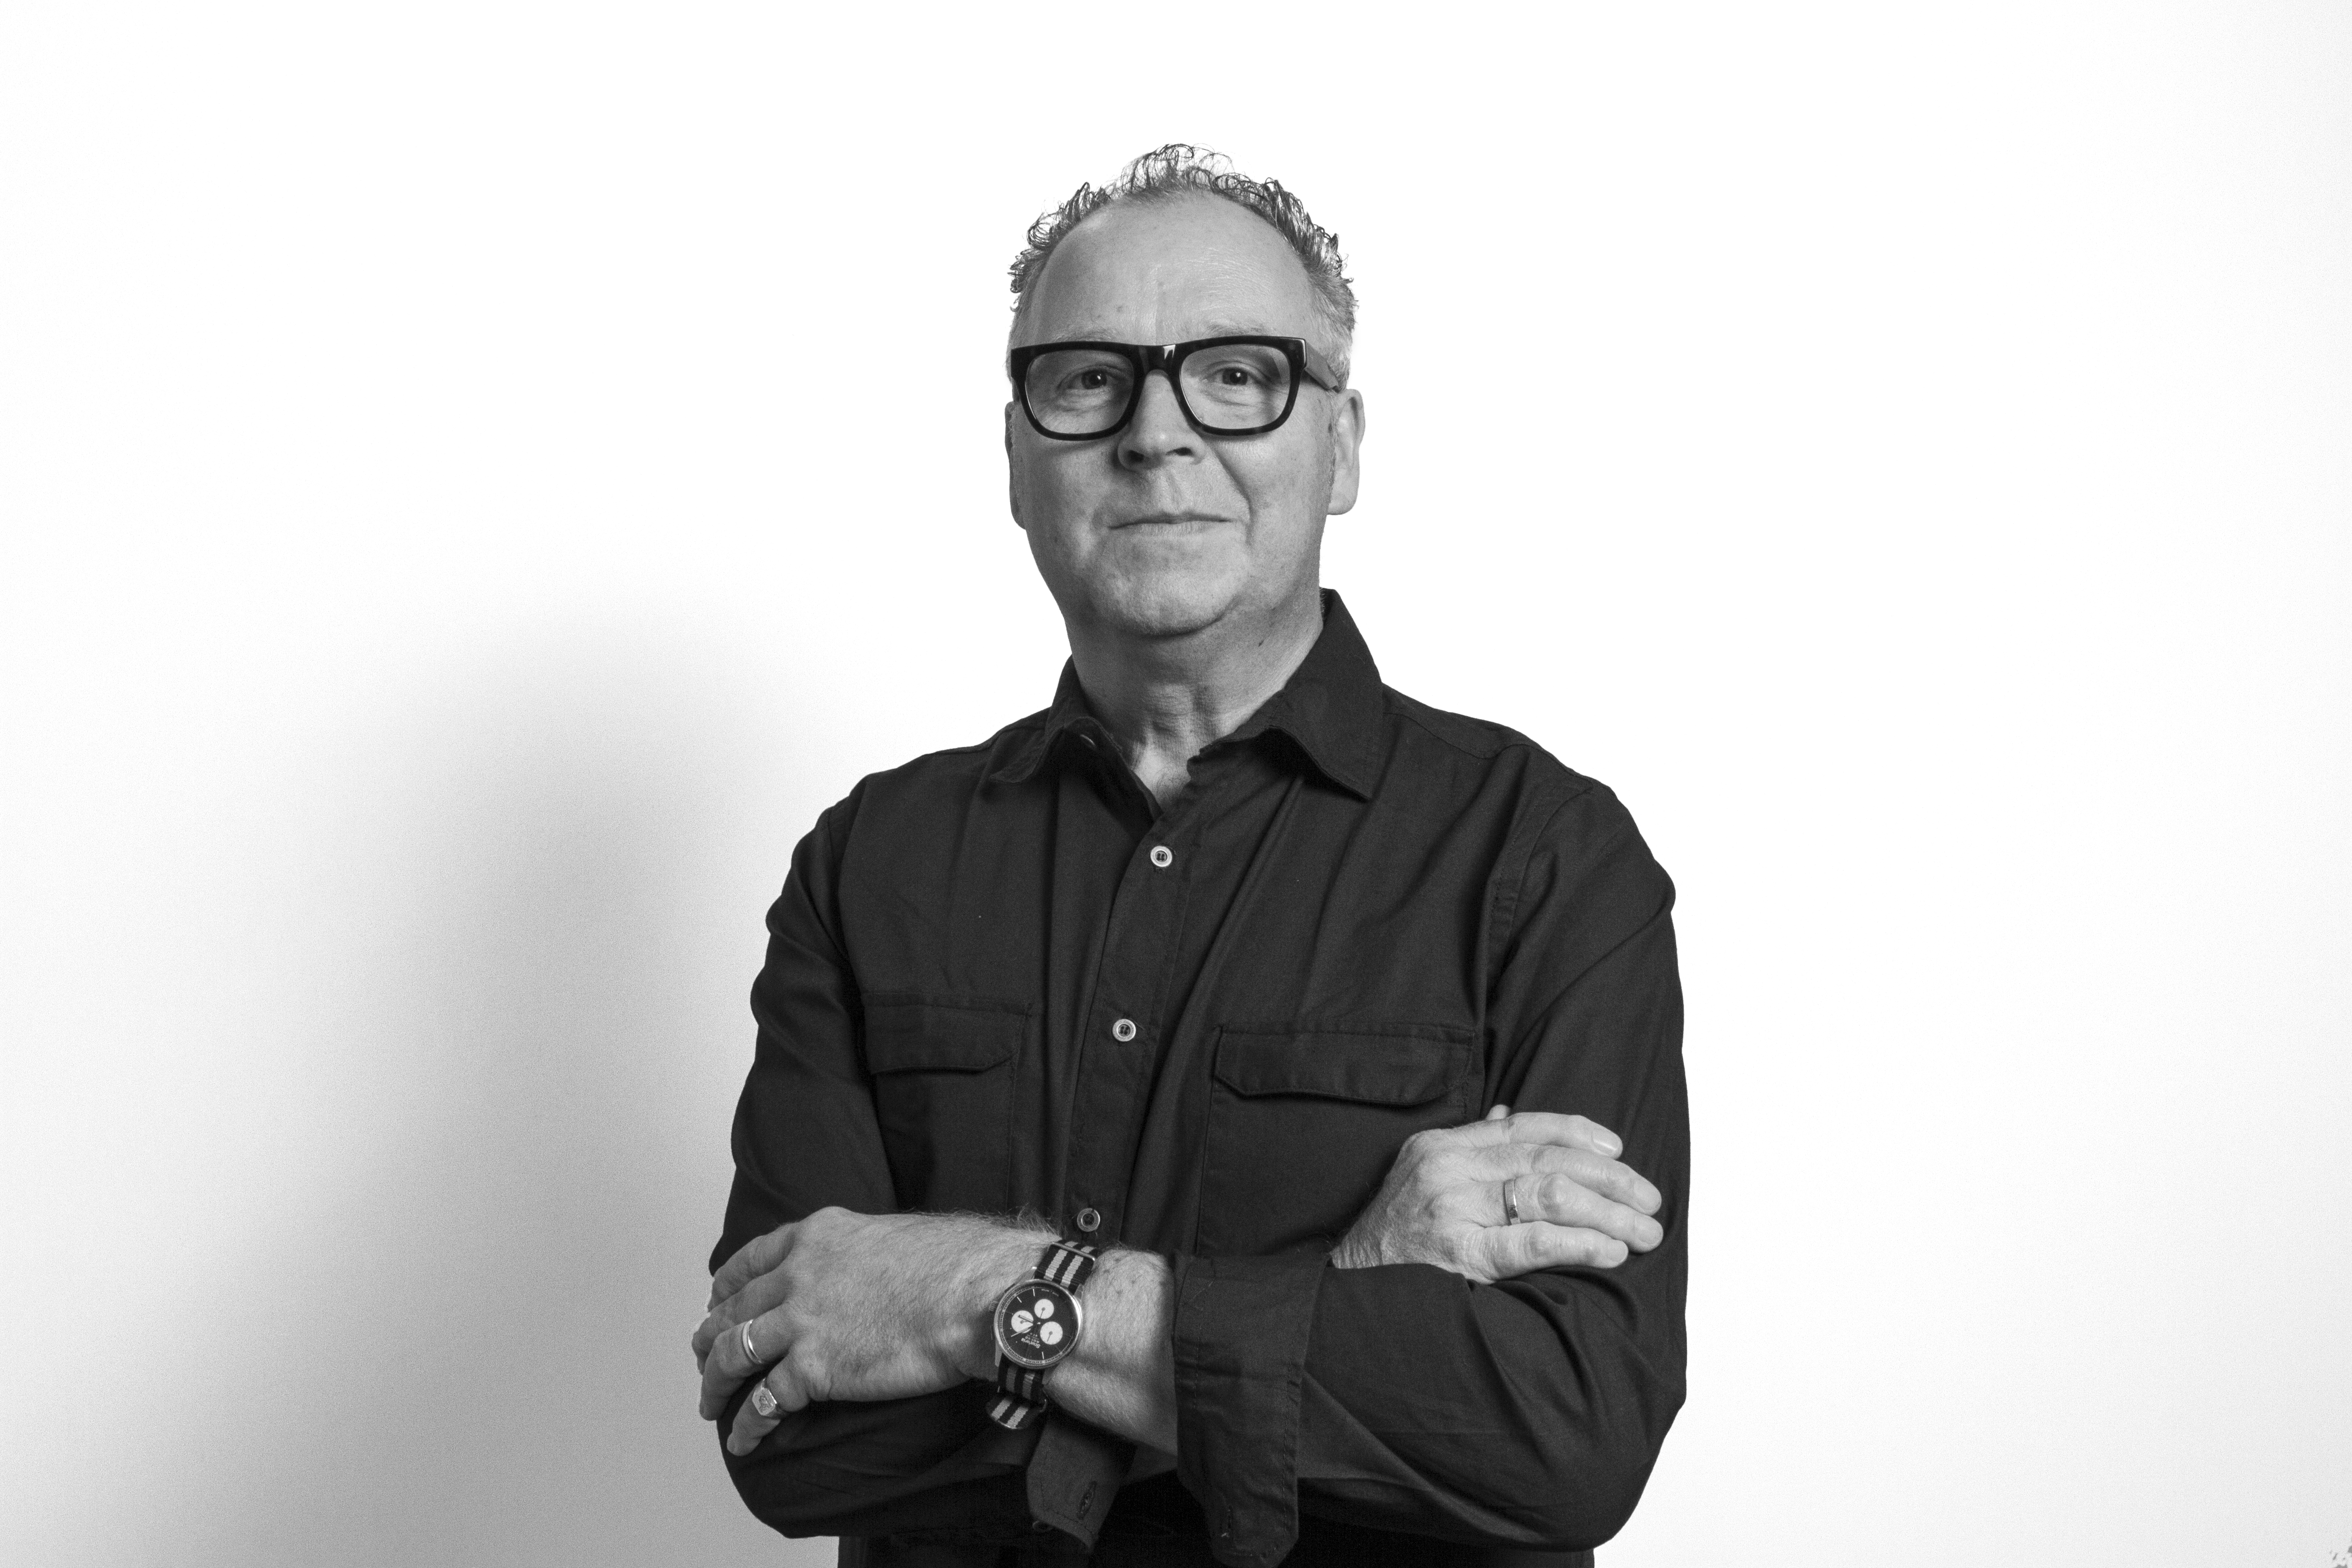 Toby Talbot departs the CCO role at Saatchi & Saatchi New Zealand for European career move